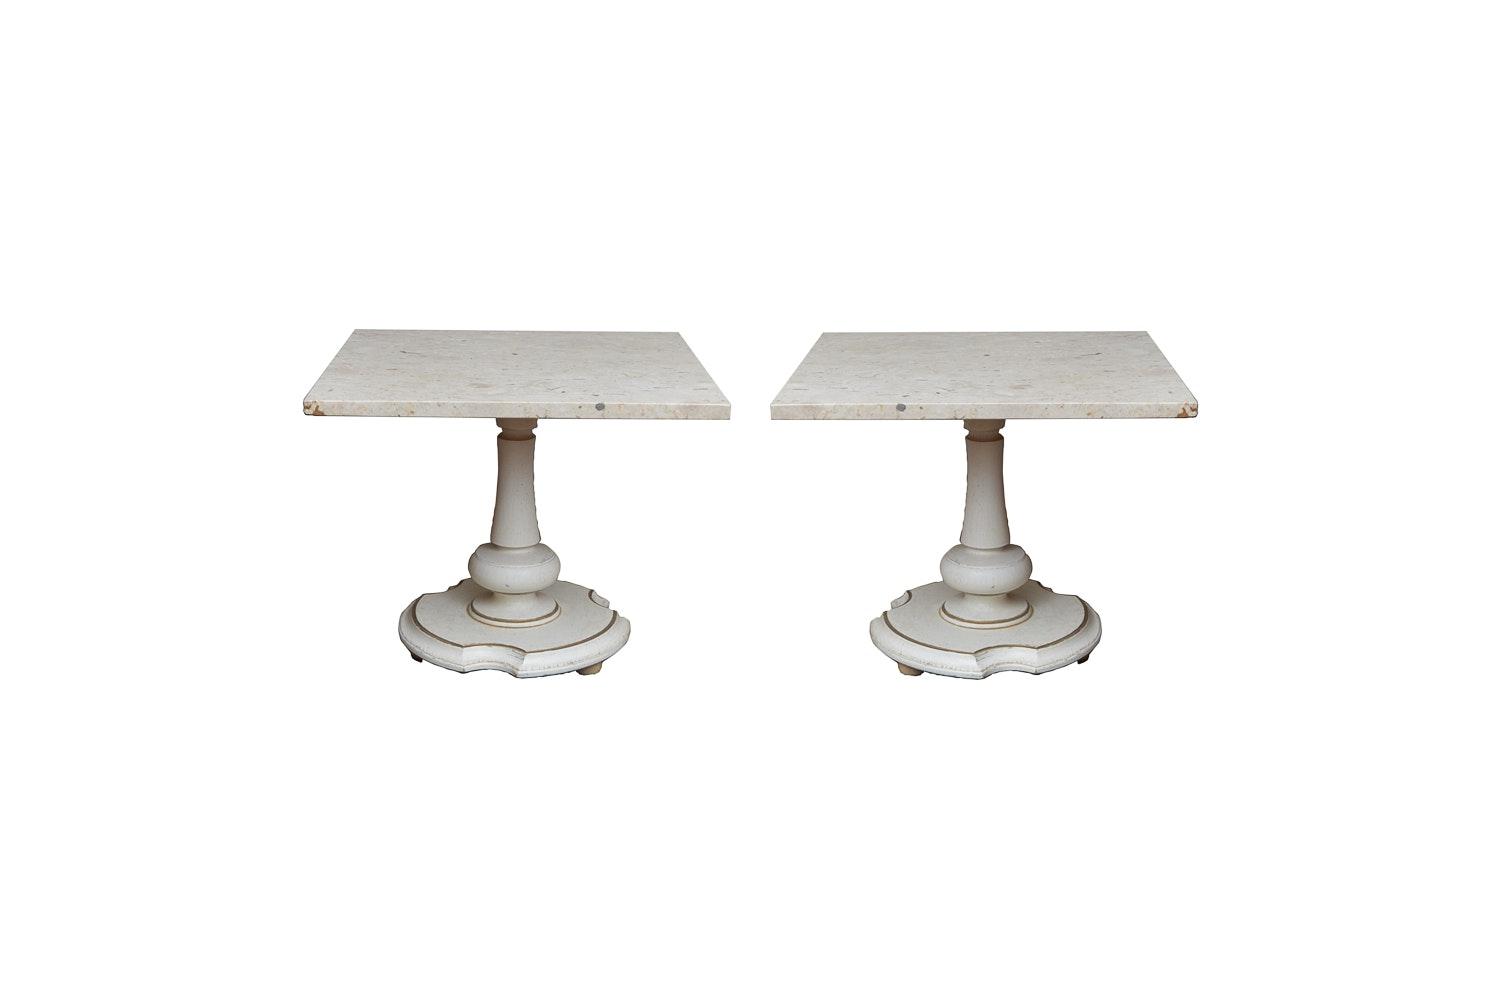 Pair of Hollywood Regency Travertine Marble End Tables